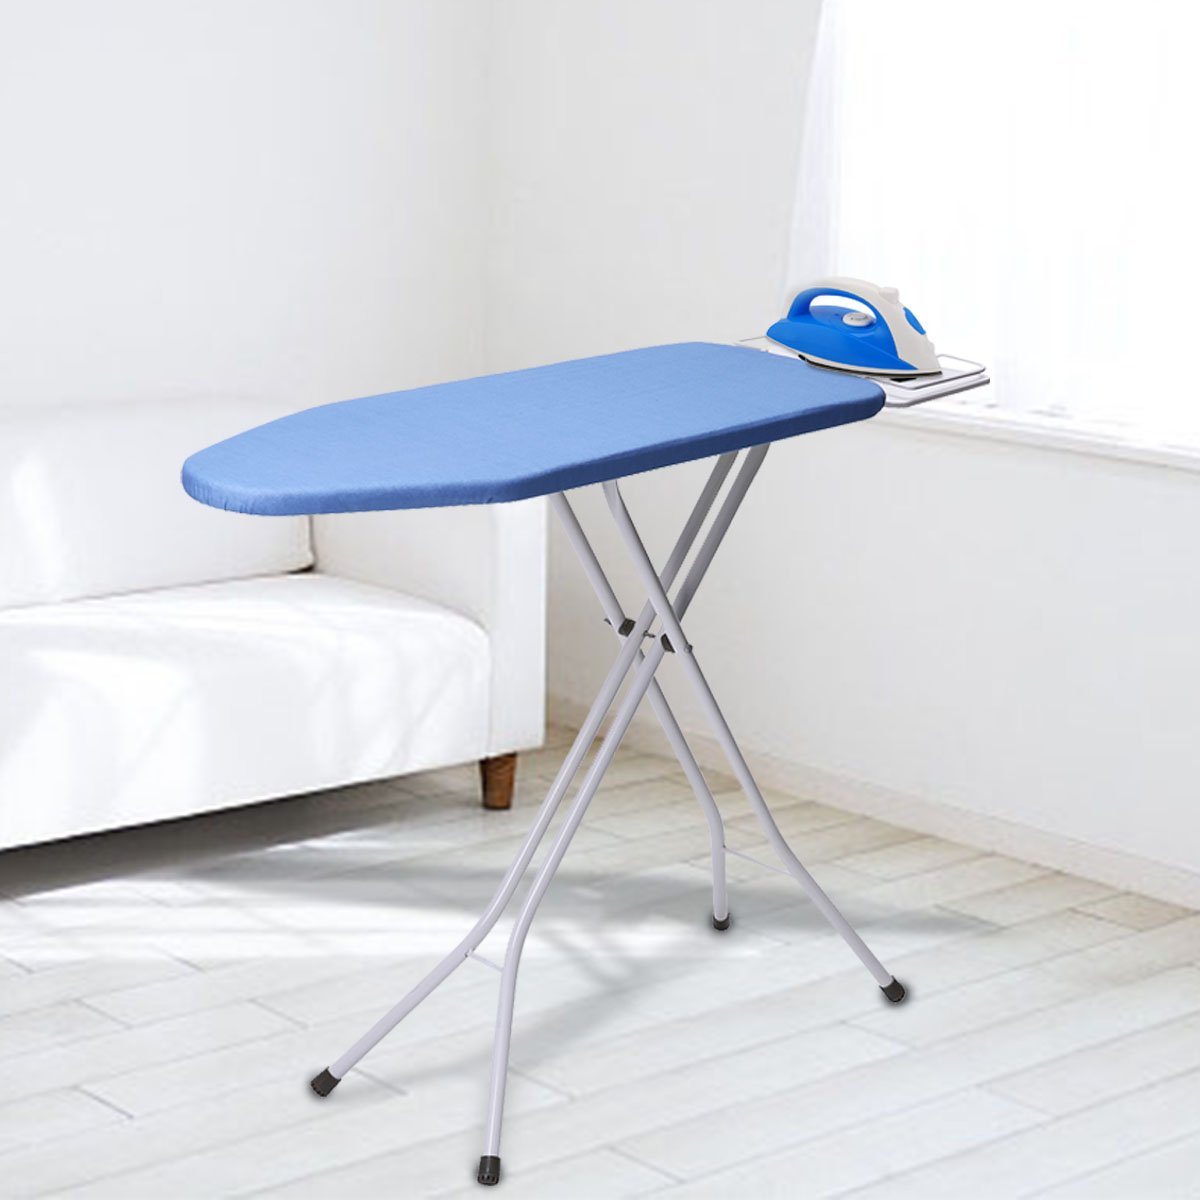 KINGSO 30''x28'' Opensize 4-Leg Tabletop Ironing Board with Iron Rest Simple Design